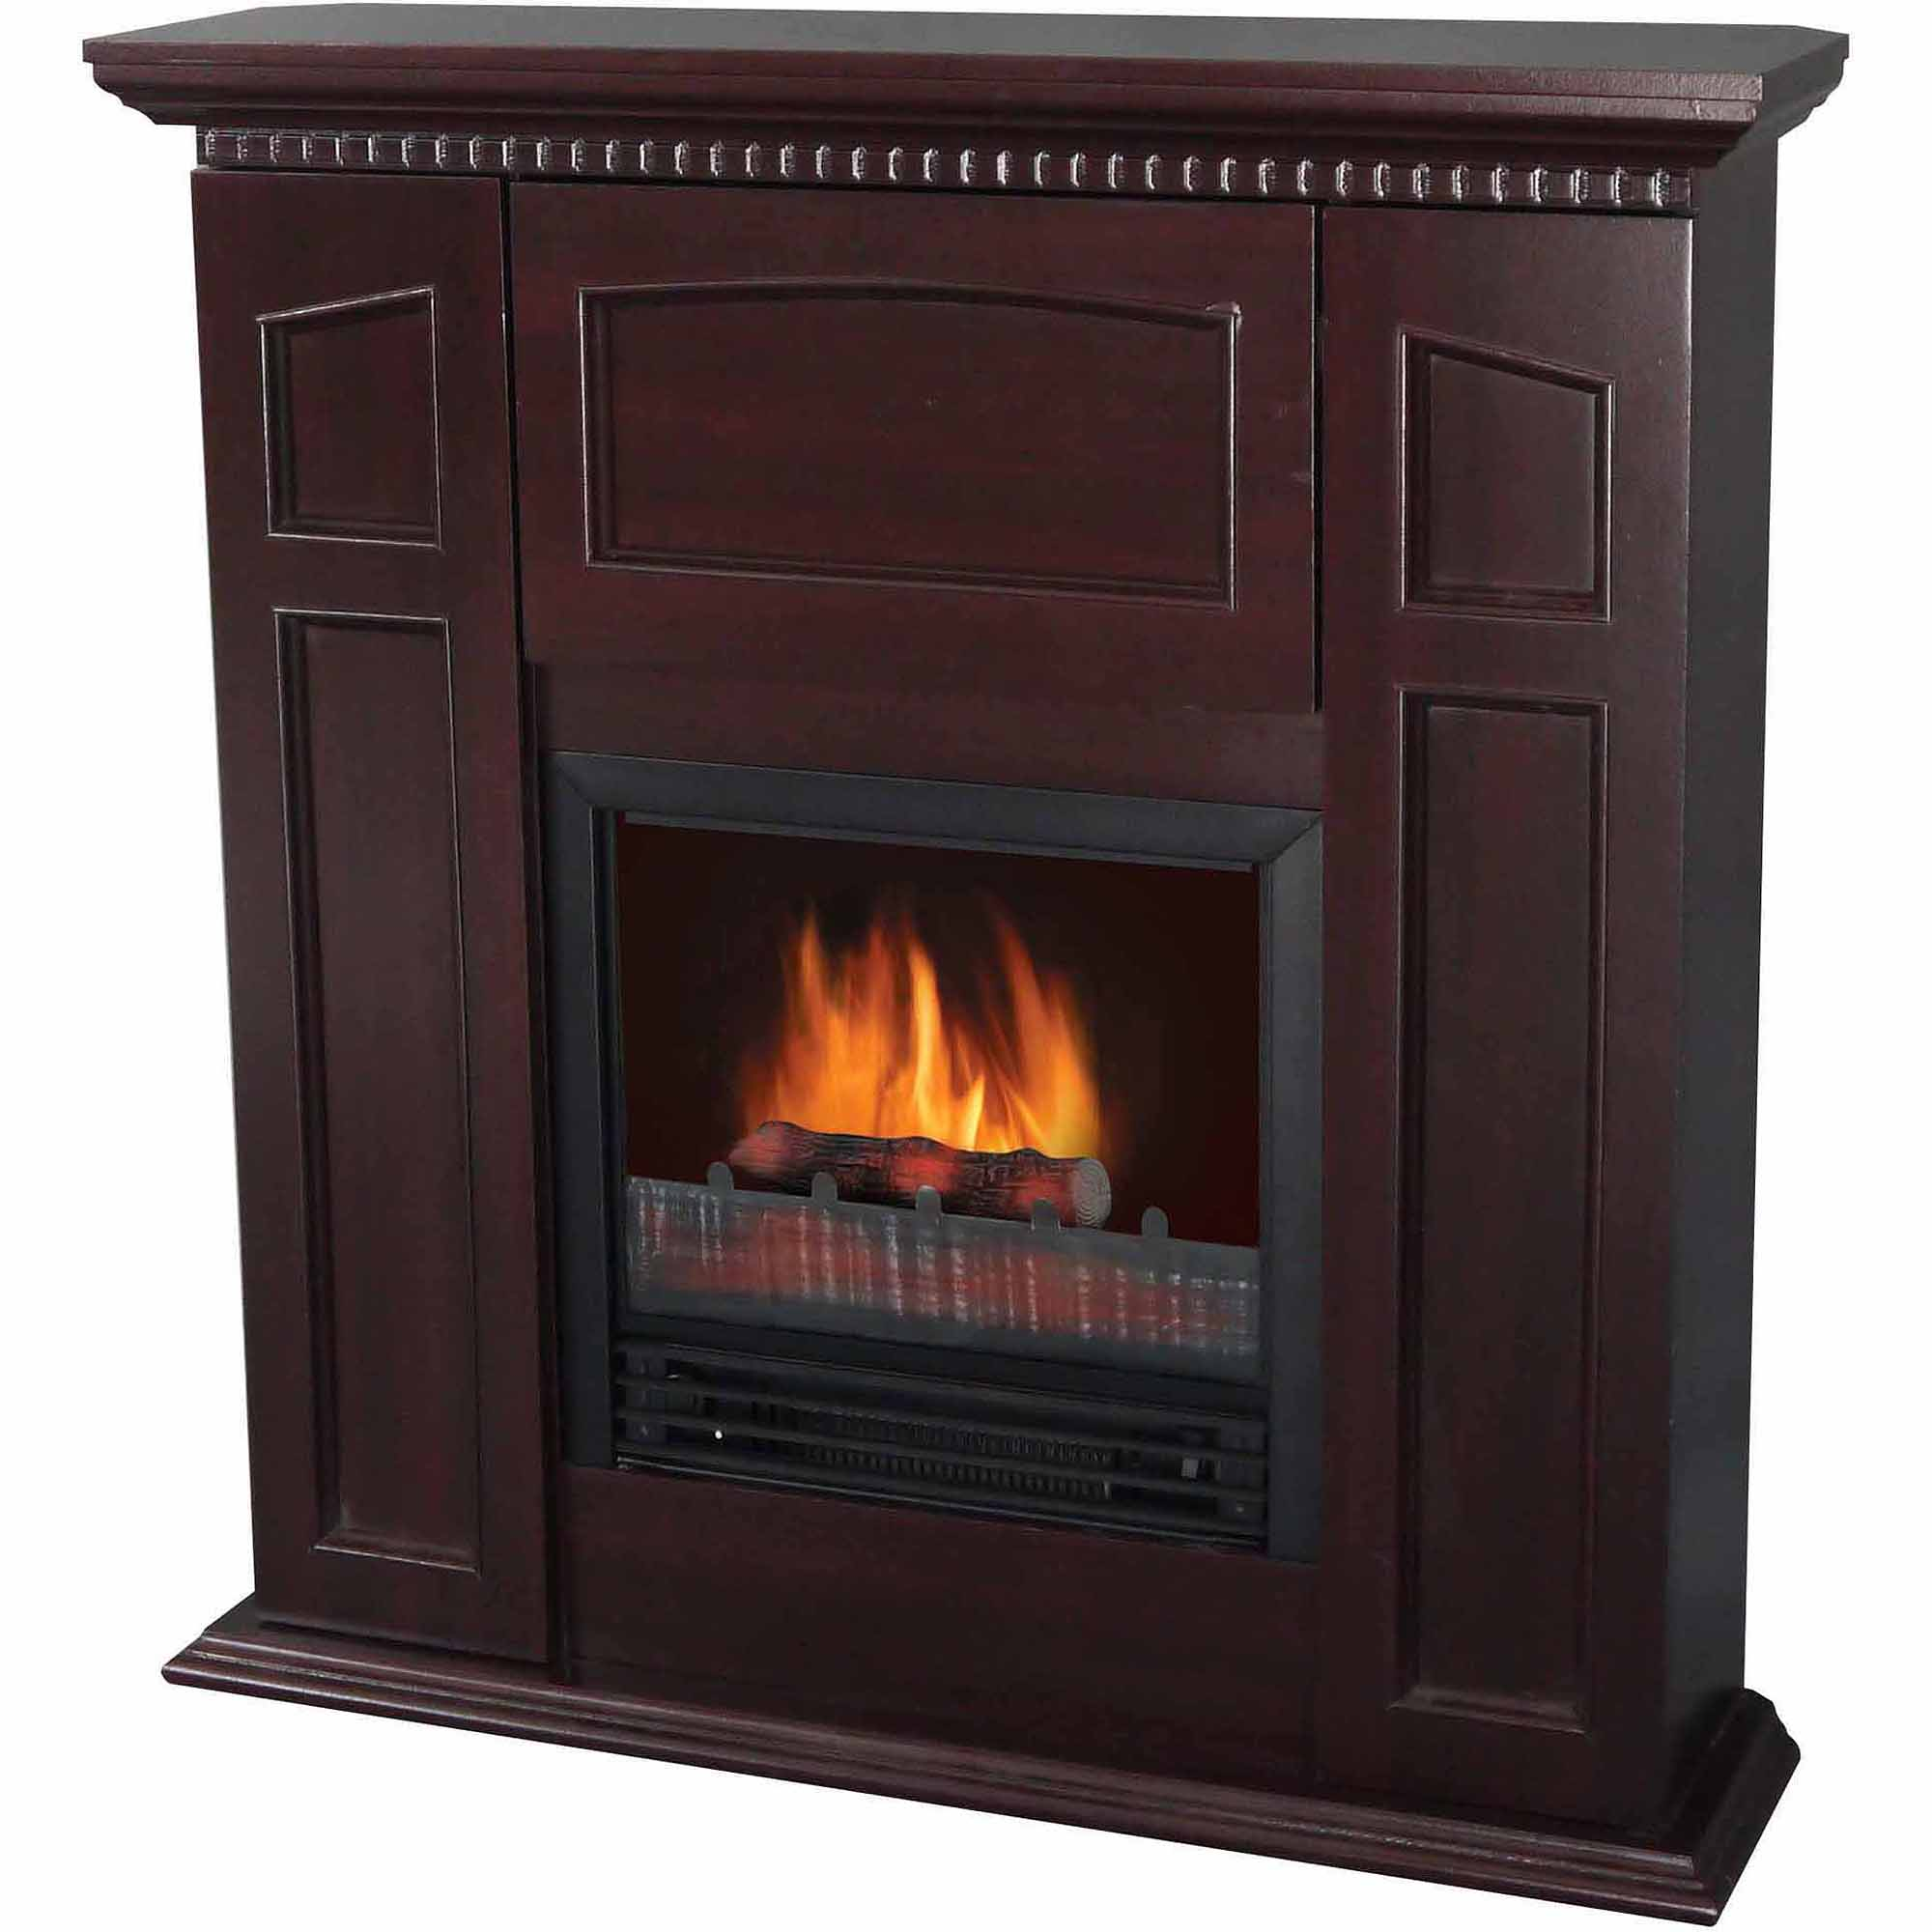 "Electric Fireplace with 36"" Mantle and Storage, Chestnut"